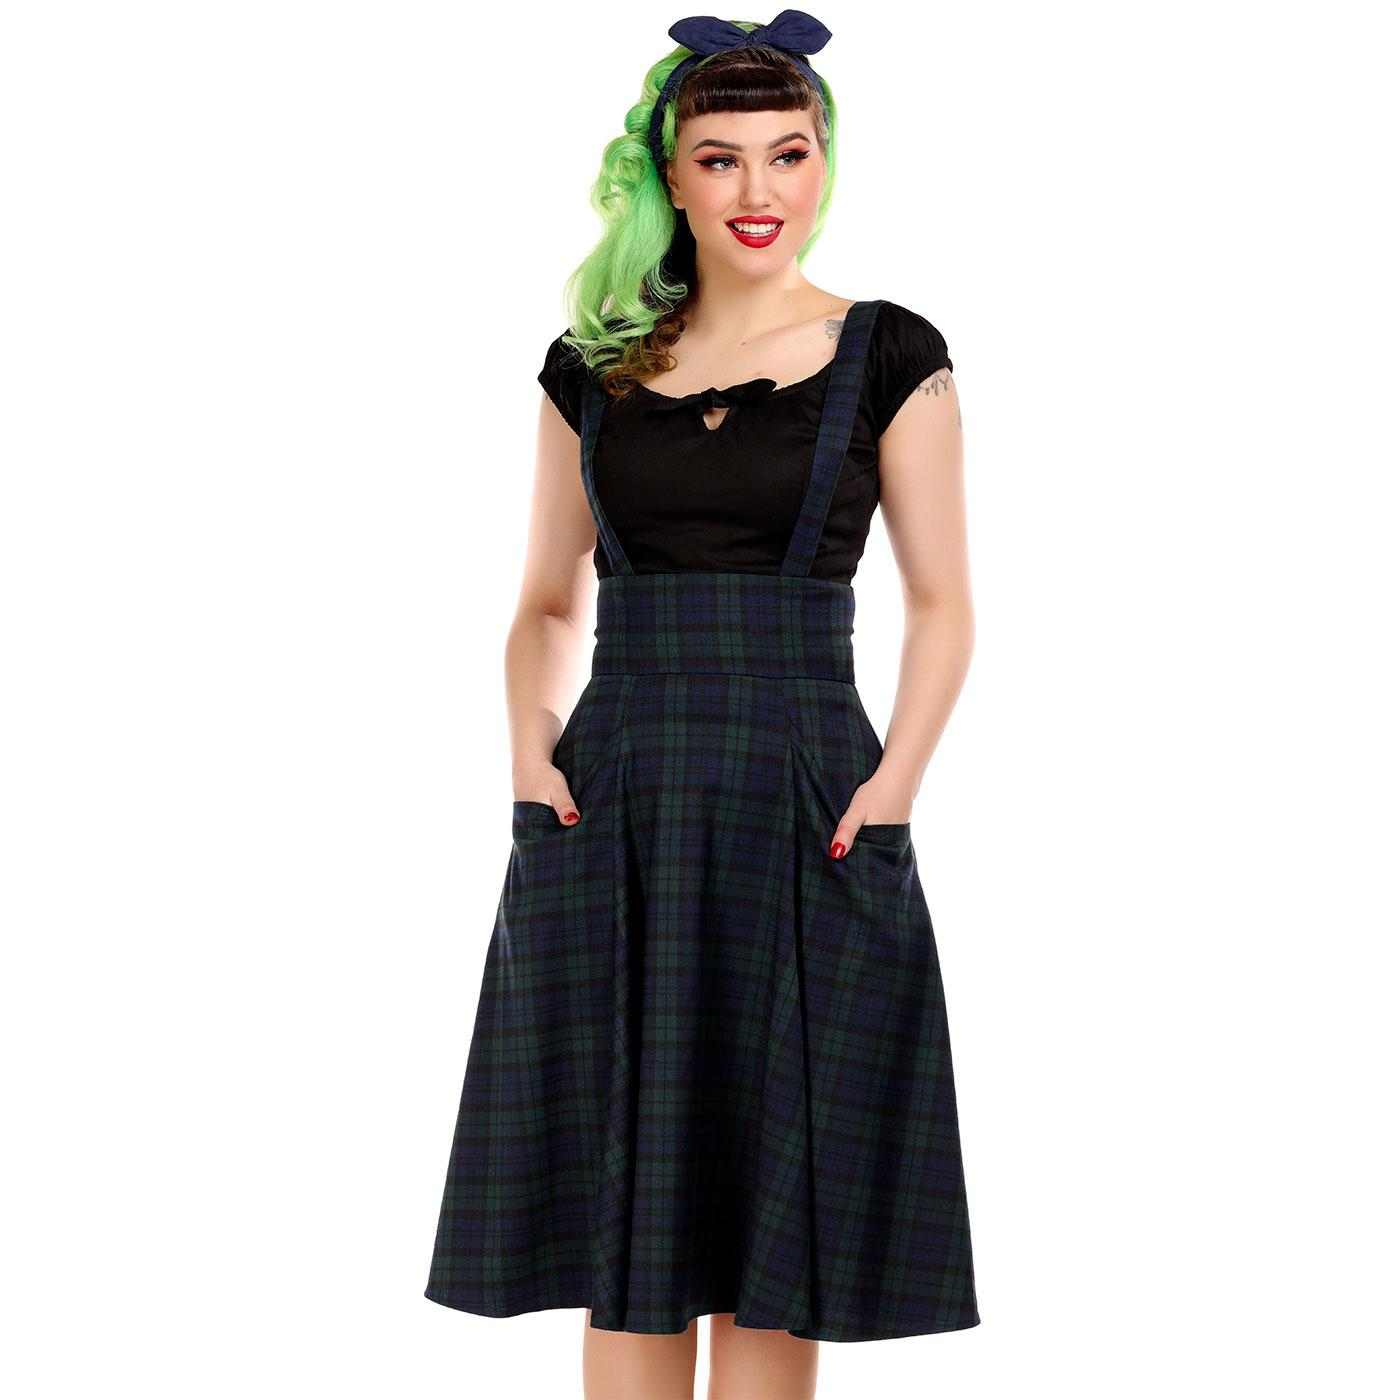 Alexa COLLECTIF Blackwatch Suspender Swing Skirt